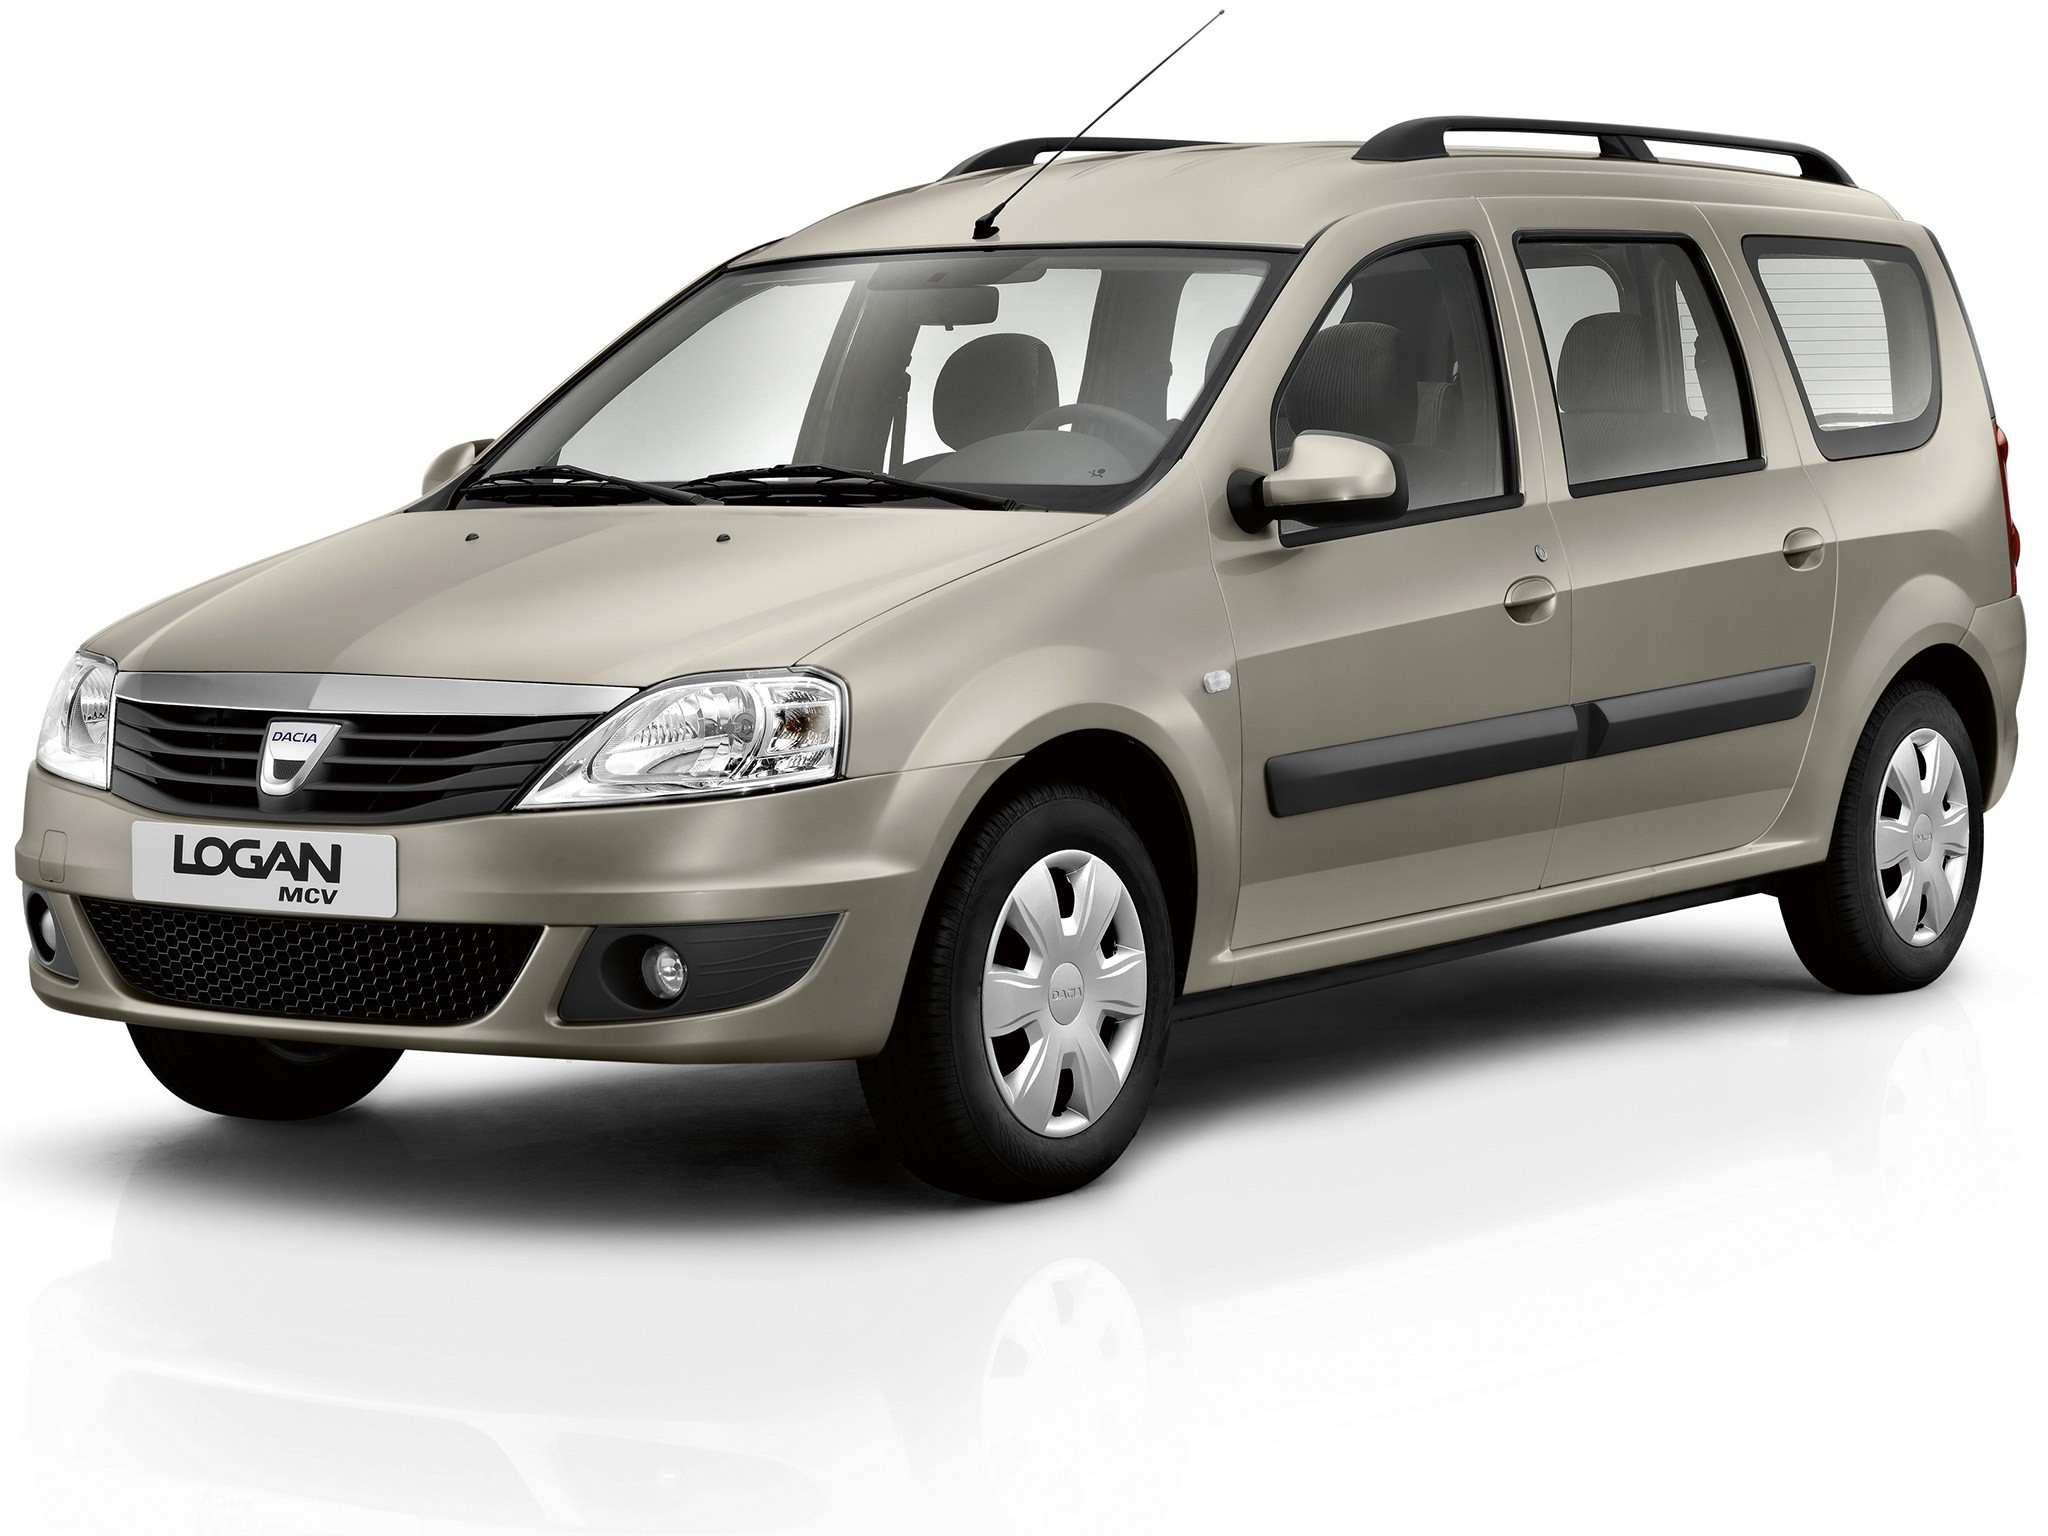 dacia logan mcv specs 2008 2009 2010 2011 2012 autoevolution. Black Bedroom Furniture Sets. Home Design Ideas